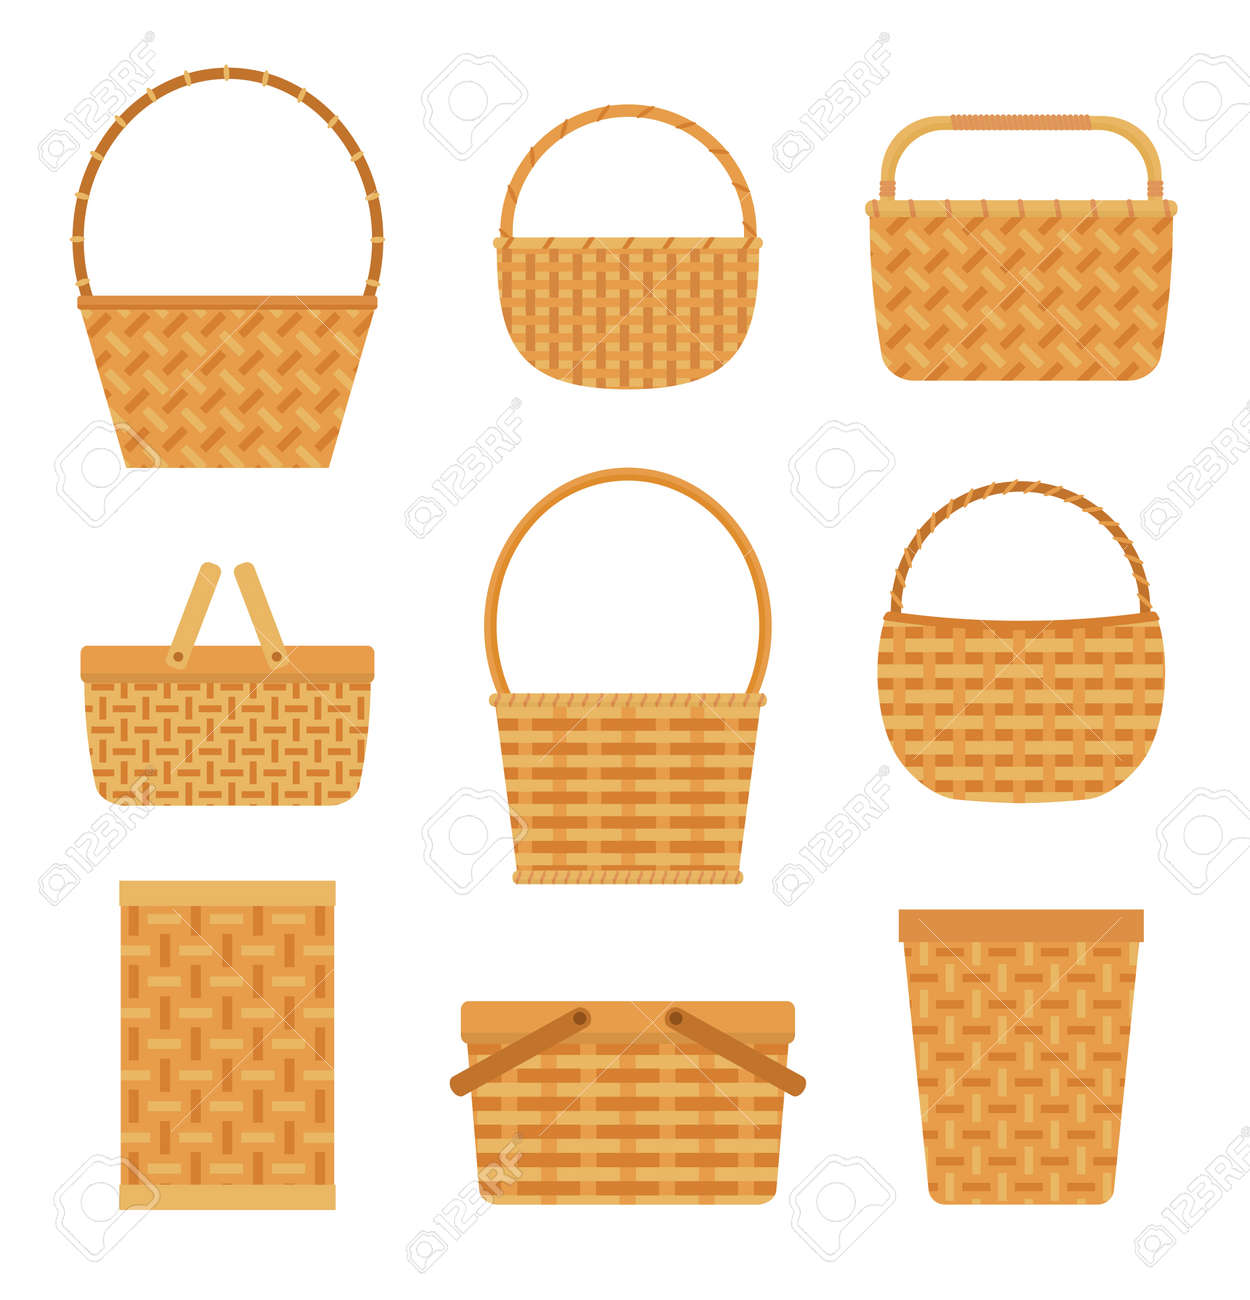 Collection of empty baskets, isolated on white background. Flat style vector illustration. - 96251493